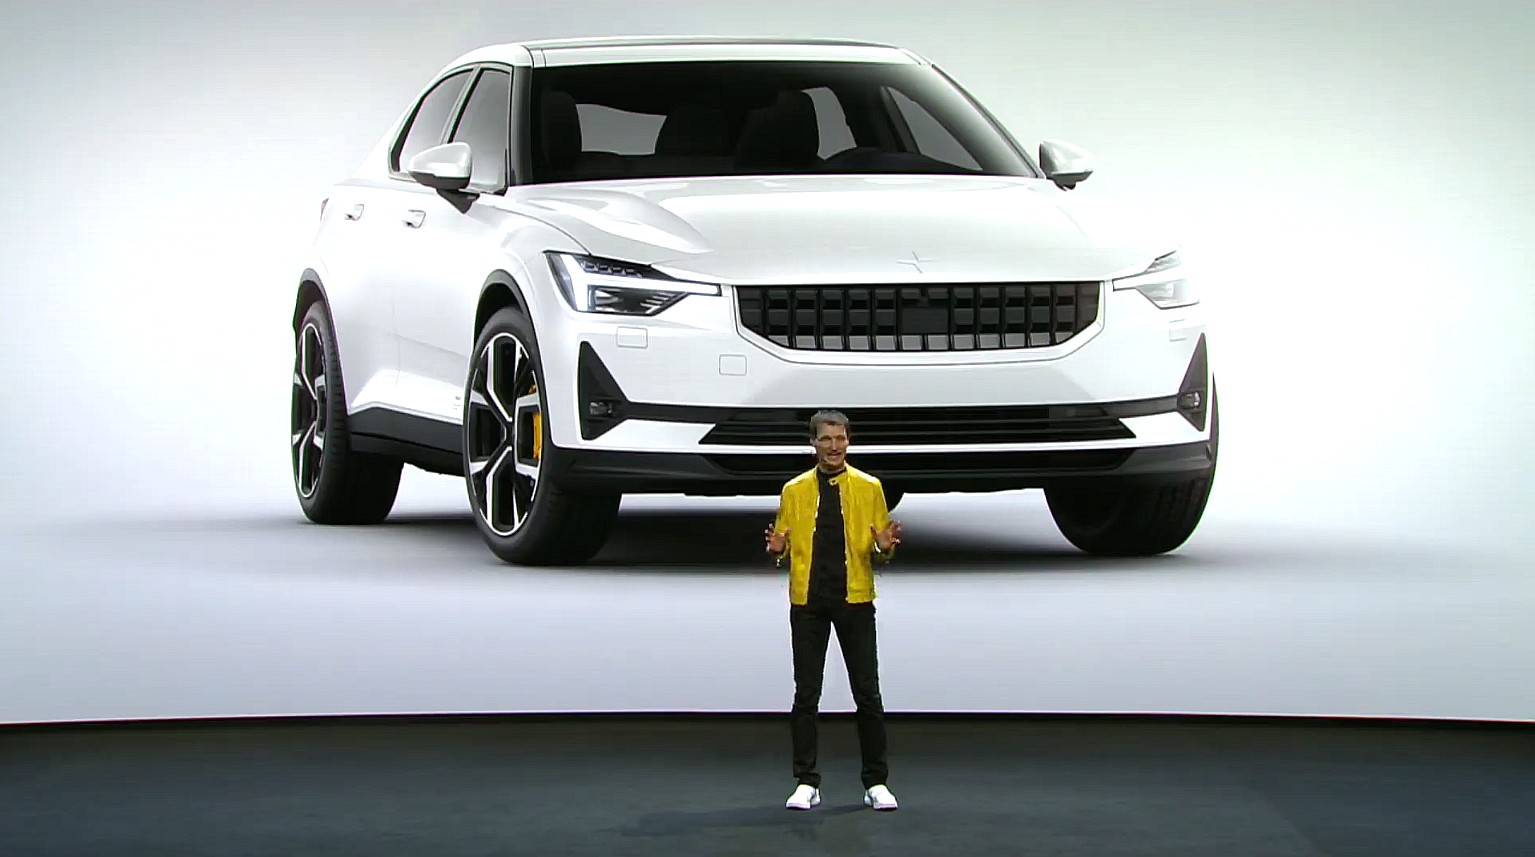 Volvo's Polestar 2 is a dual motor, 275-mile, 78 kWh Tesla Model 3 competitor